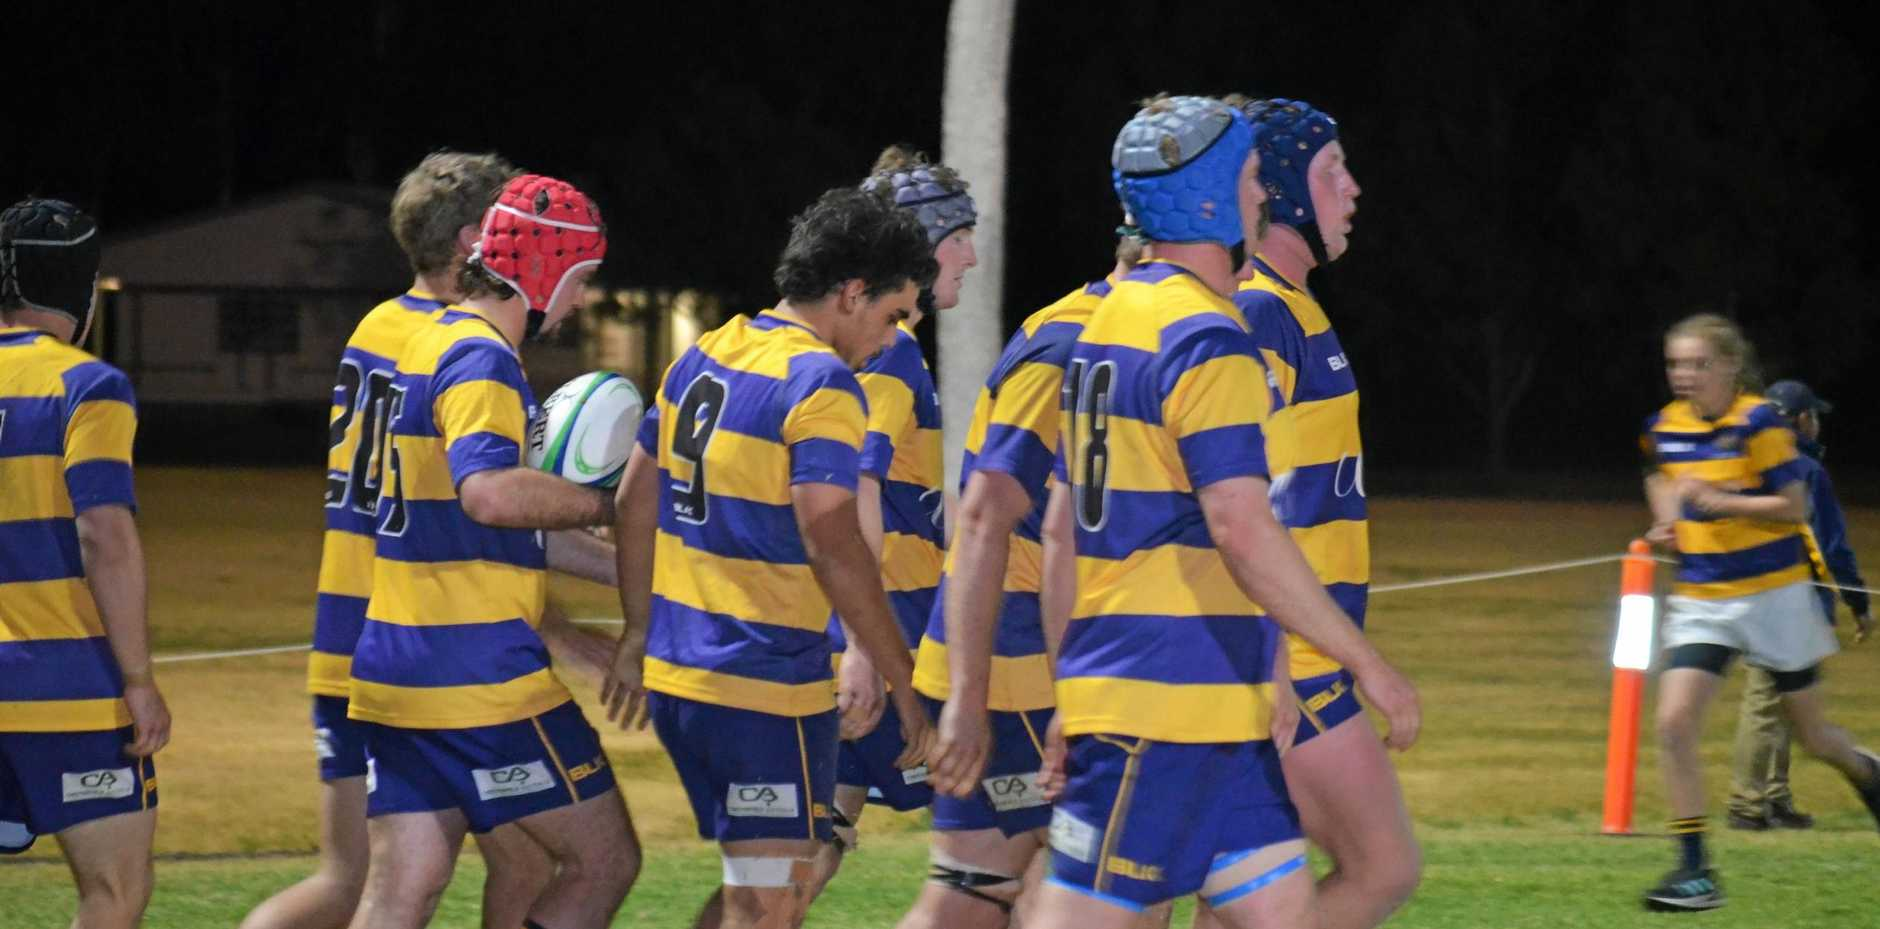 FINALS VICTORY: The Wheatmen gather after scoring against USQ in their qualifying finals victory at John Ritter Oval.